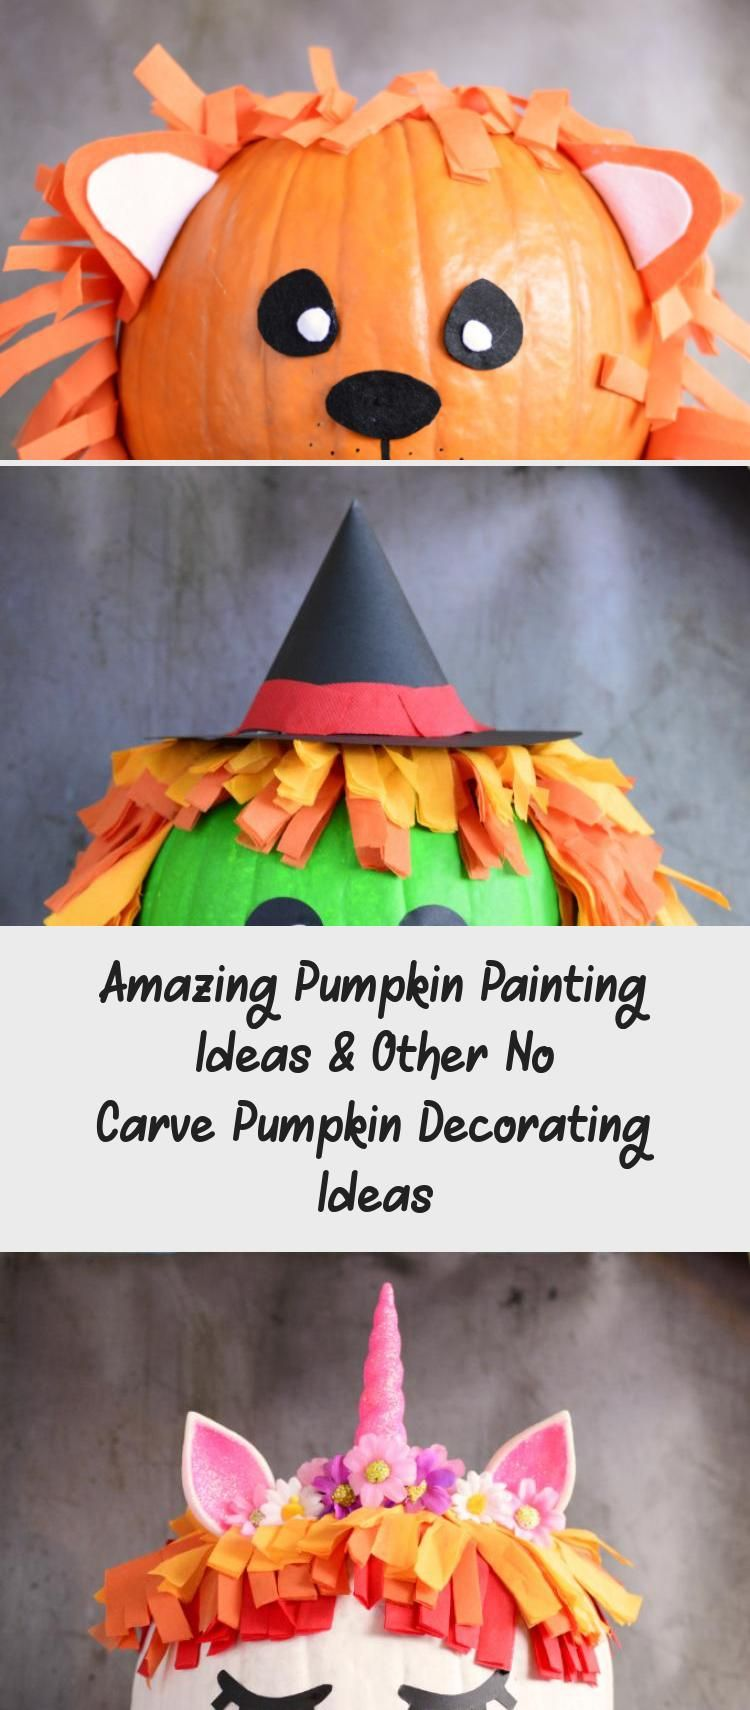 Amazing Pumpkin Painting Ideas & Other No Carve Pumpkin Decorating Ideas #paintingideasForFurniture #paintingideasForTeens #paintingideasAbstract #Couplepaintingideas #paintingideasOnPaper #pumpkinpaintingideas